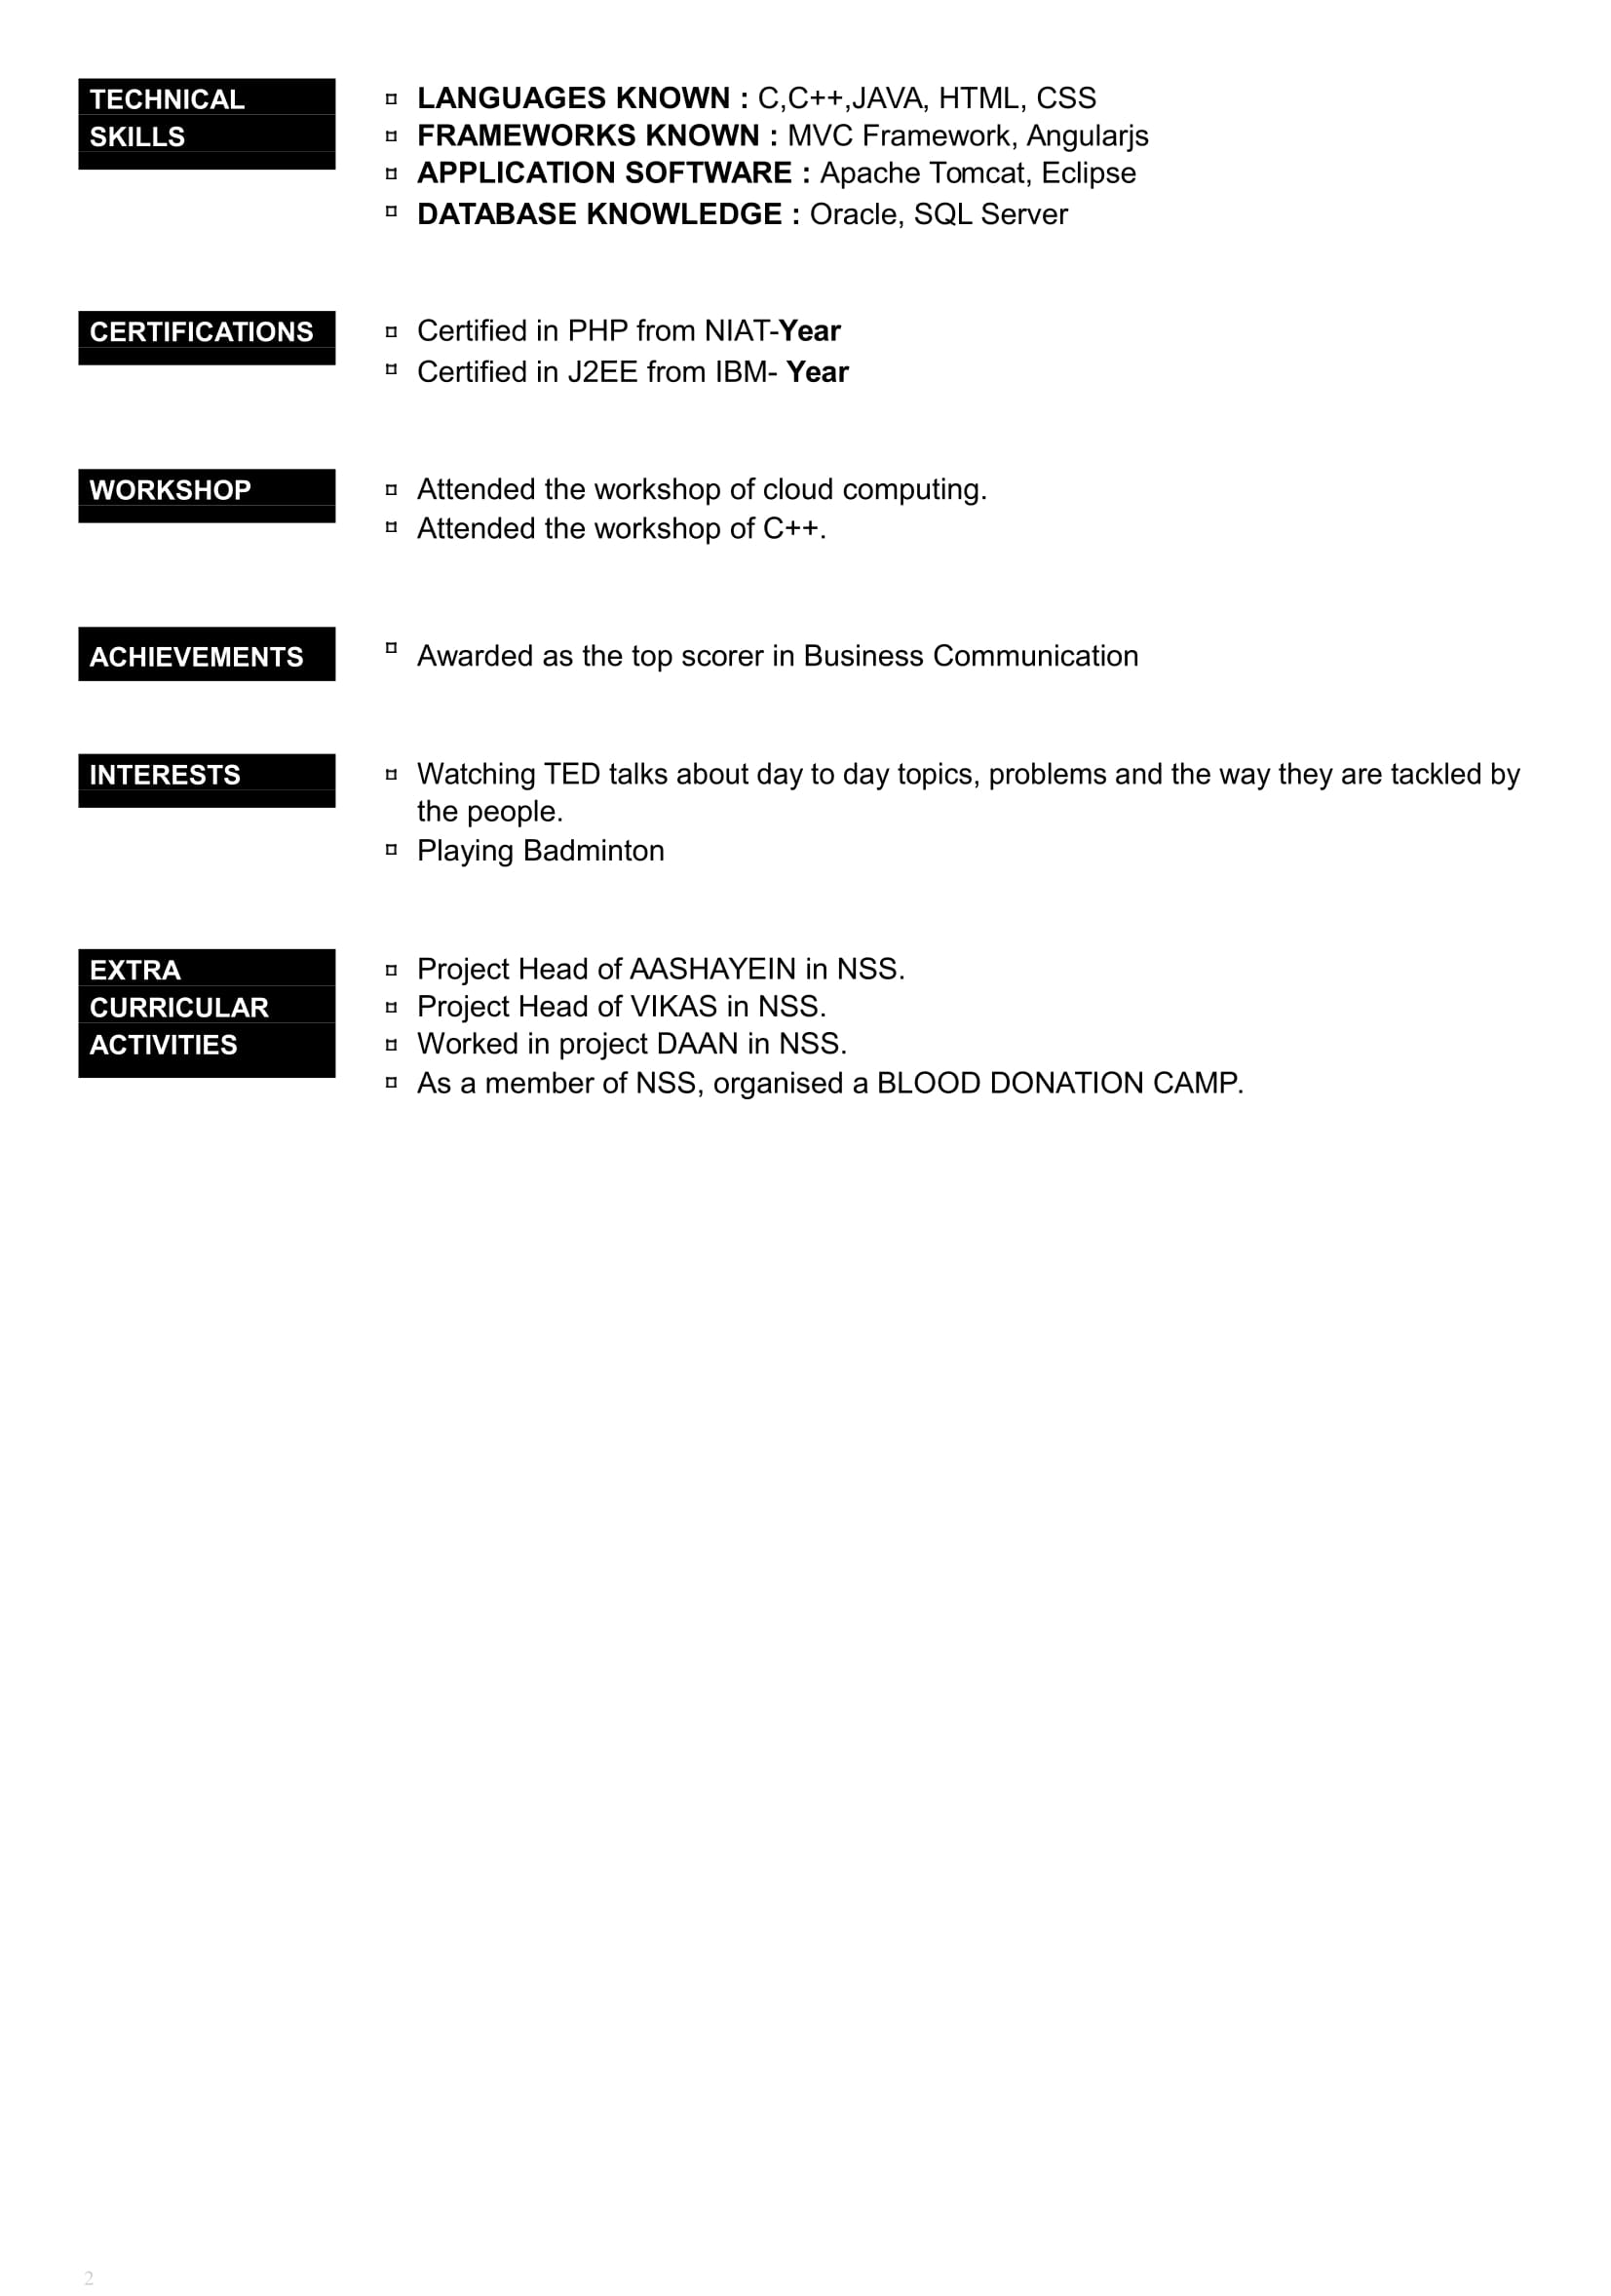 Resume Format For Job Interview For Freshers Pdf Download